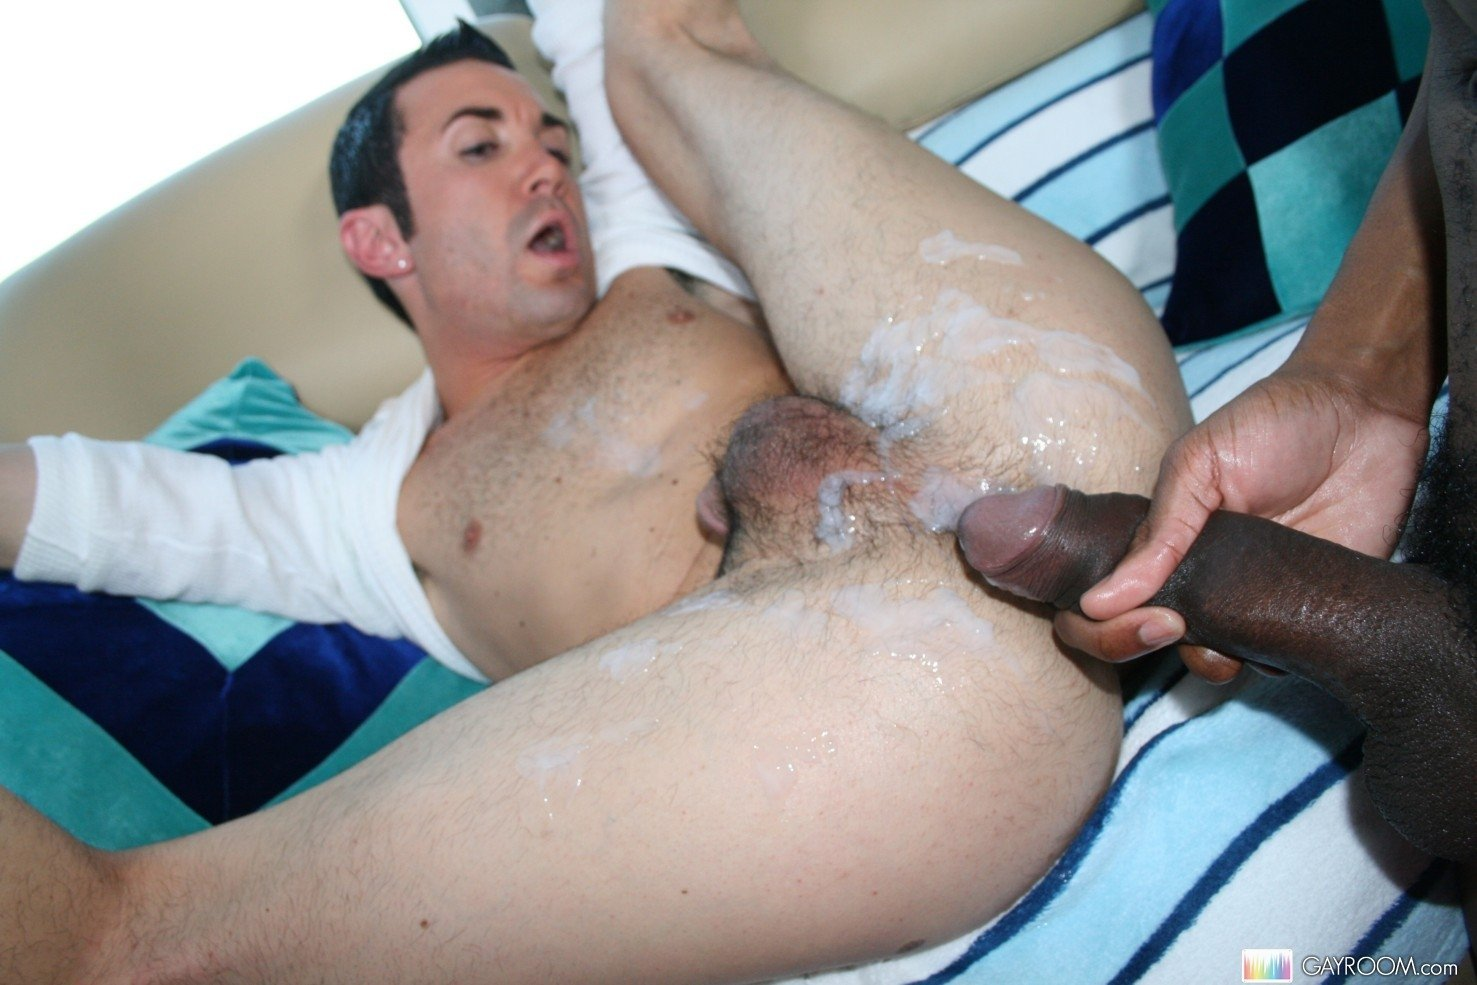 extreme gay rough bareback fuck breed and seed